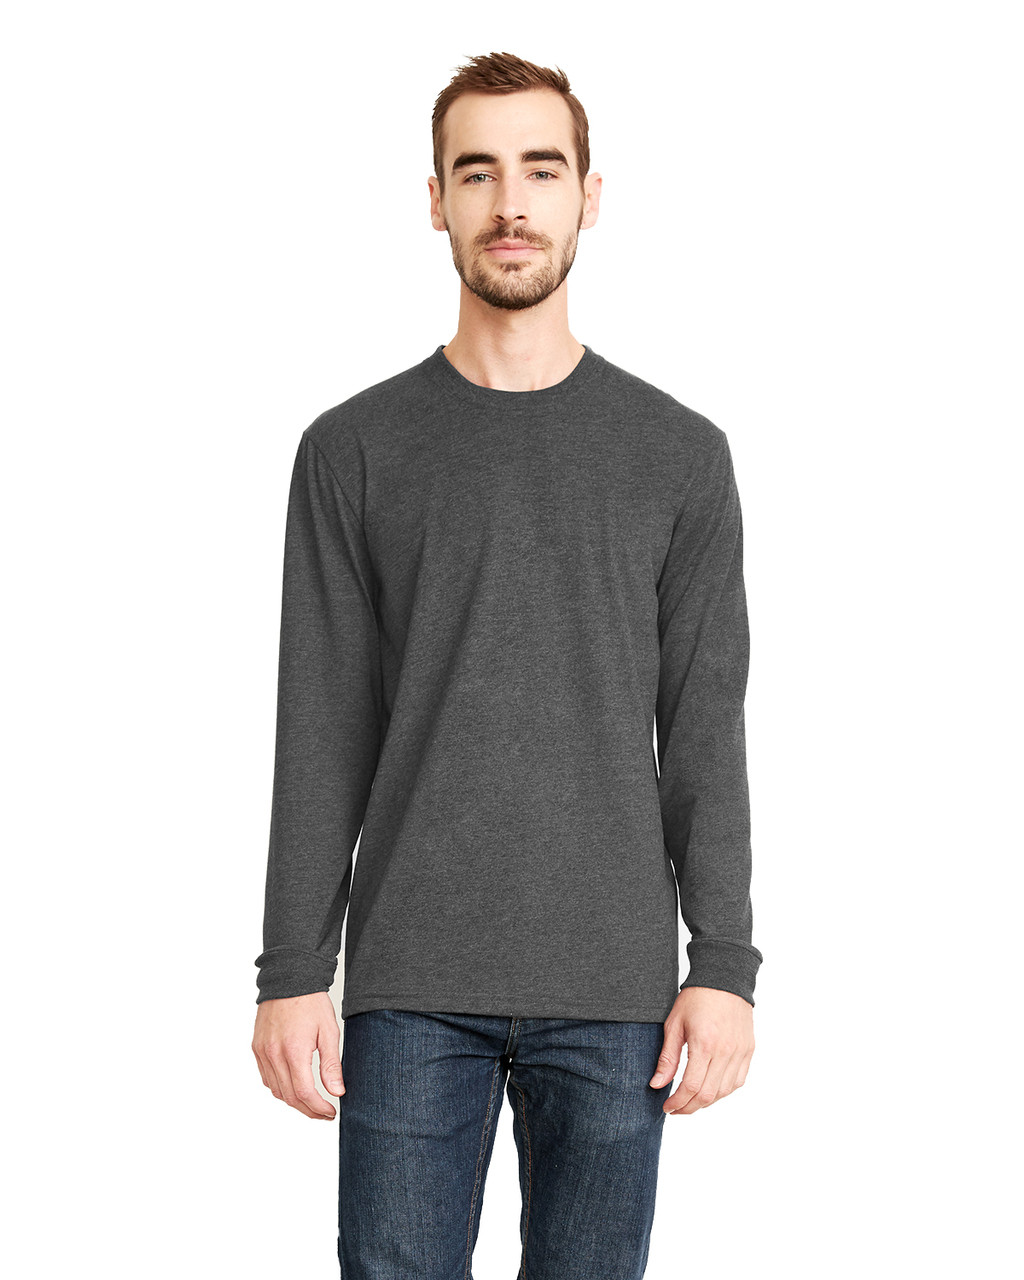 Heather Metal - 6411 Next Level Unisex Sueded Long-Sleeve Crew Shirt | Blankclothing.ca